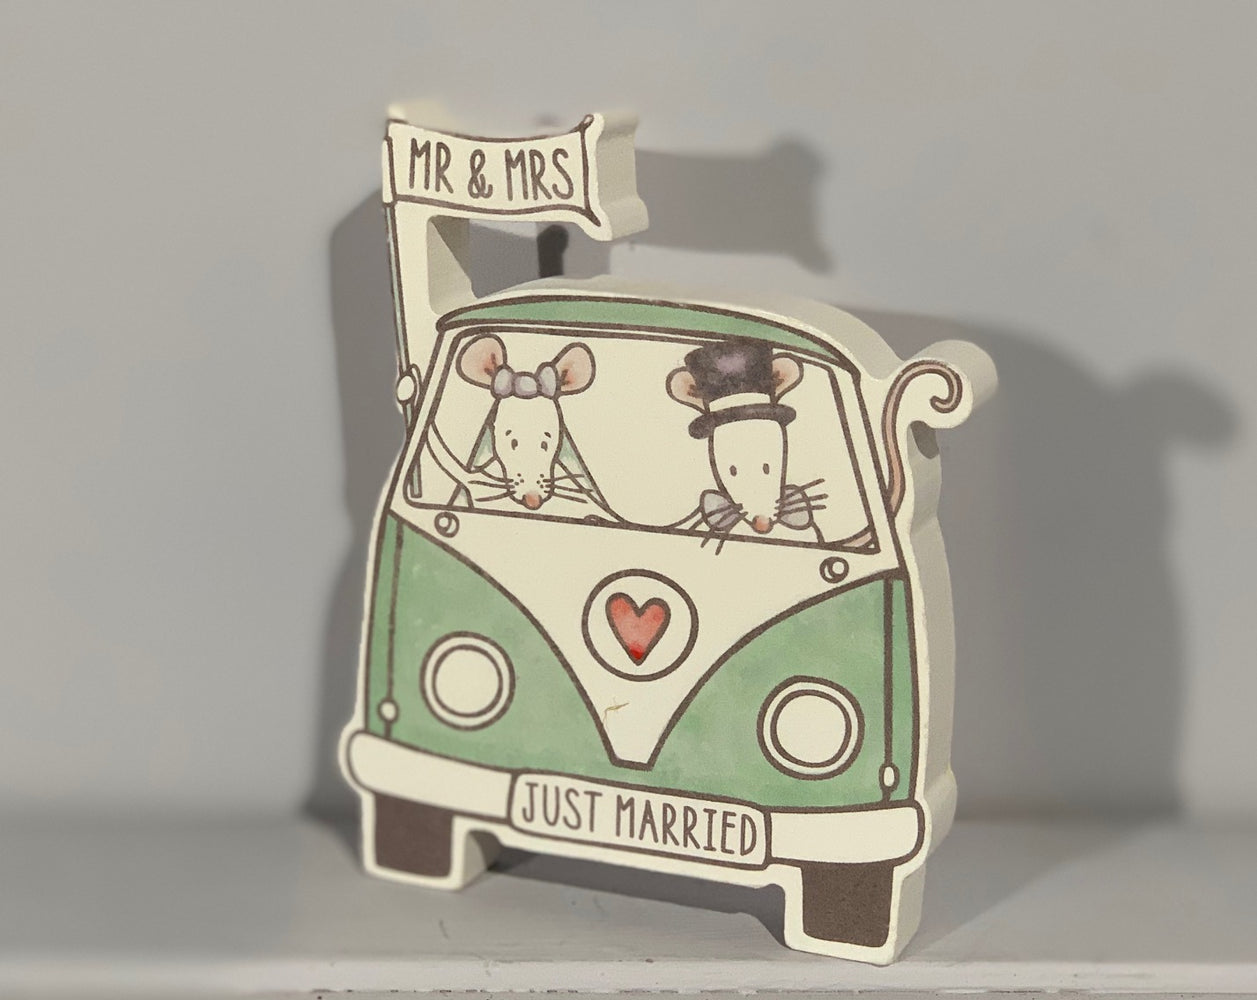 Just Married Mr & Mrs Mouse in Campervan